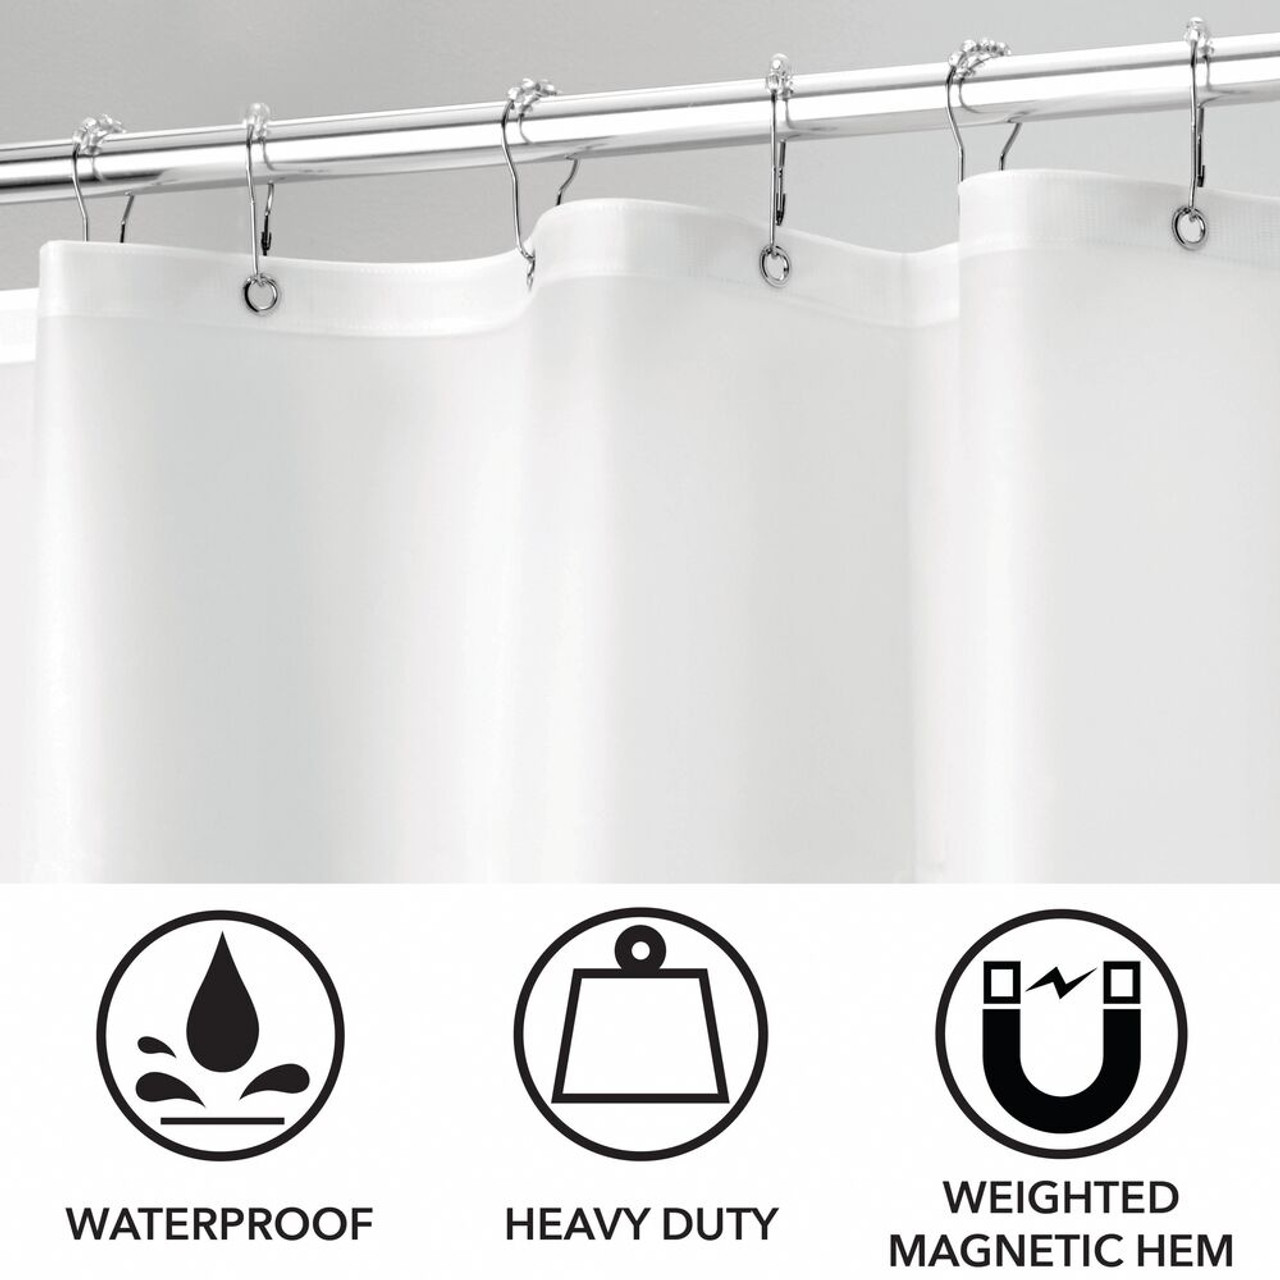 Vinyl Shower Curtain Liner In White 72x84 Extra Long Mildew Mold Water Resistant